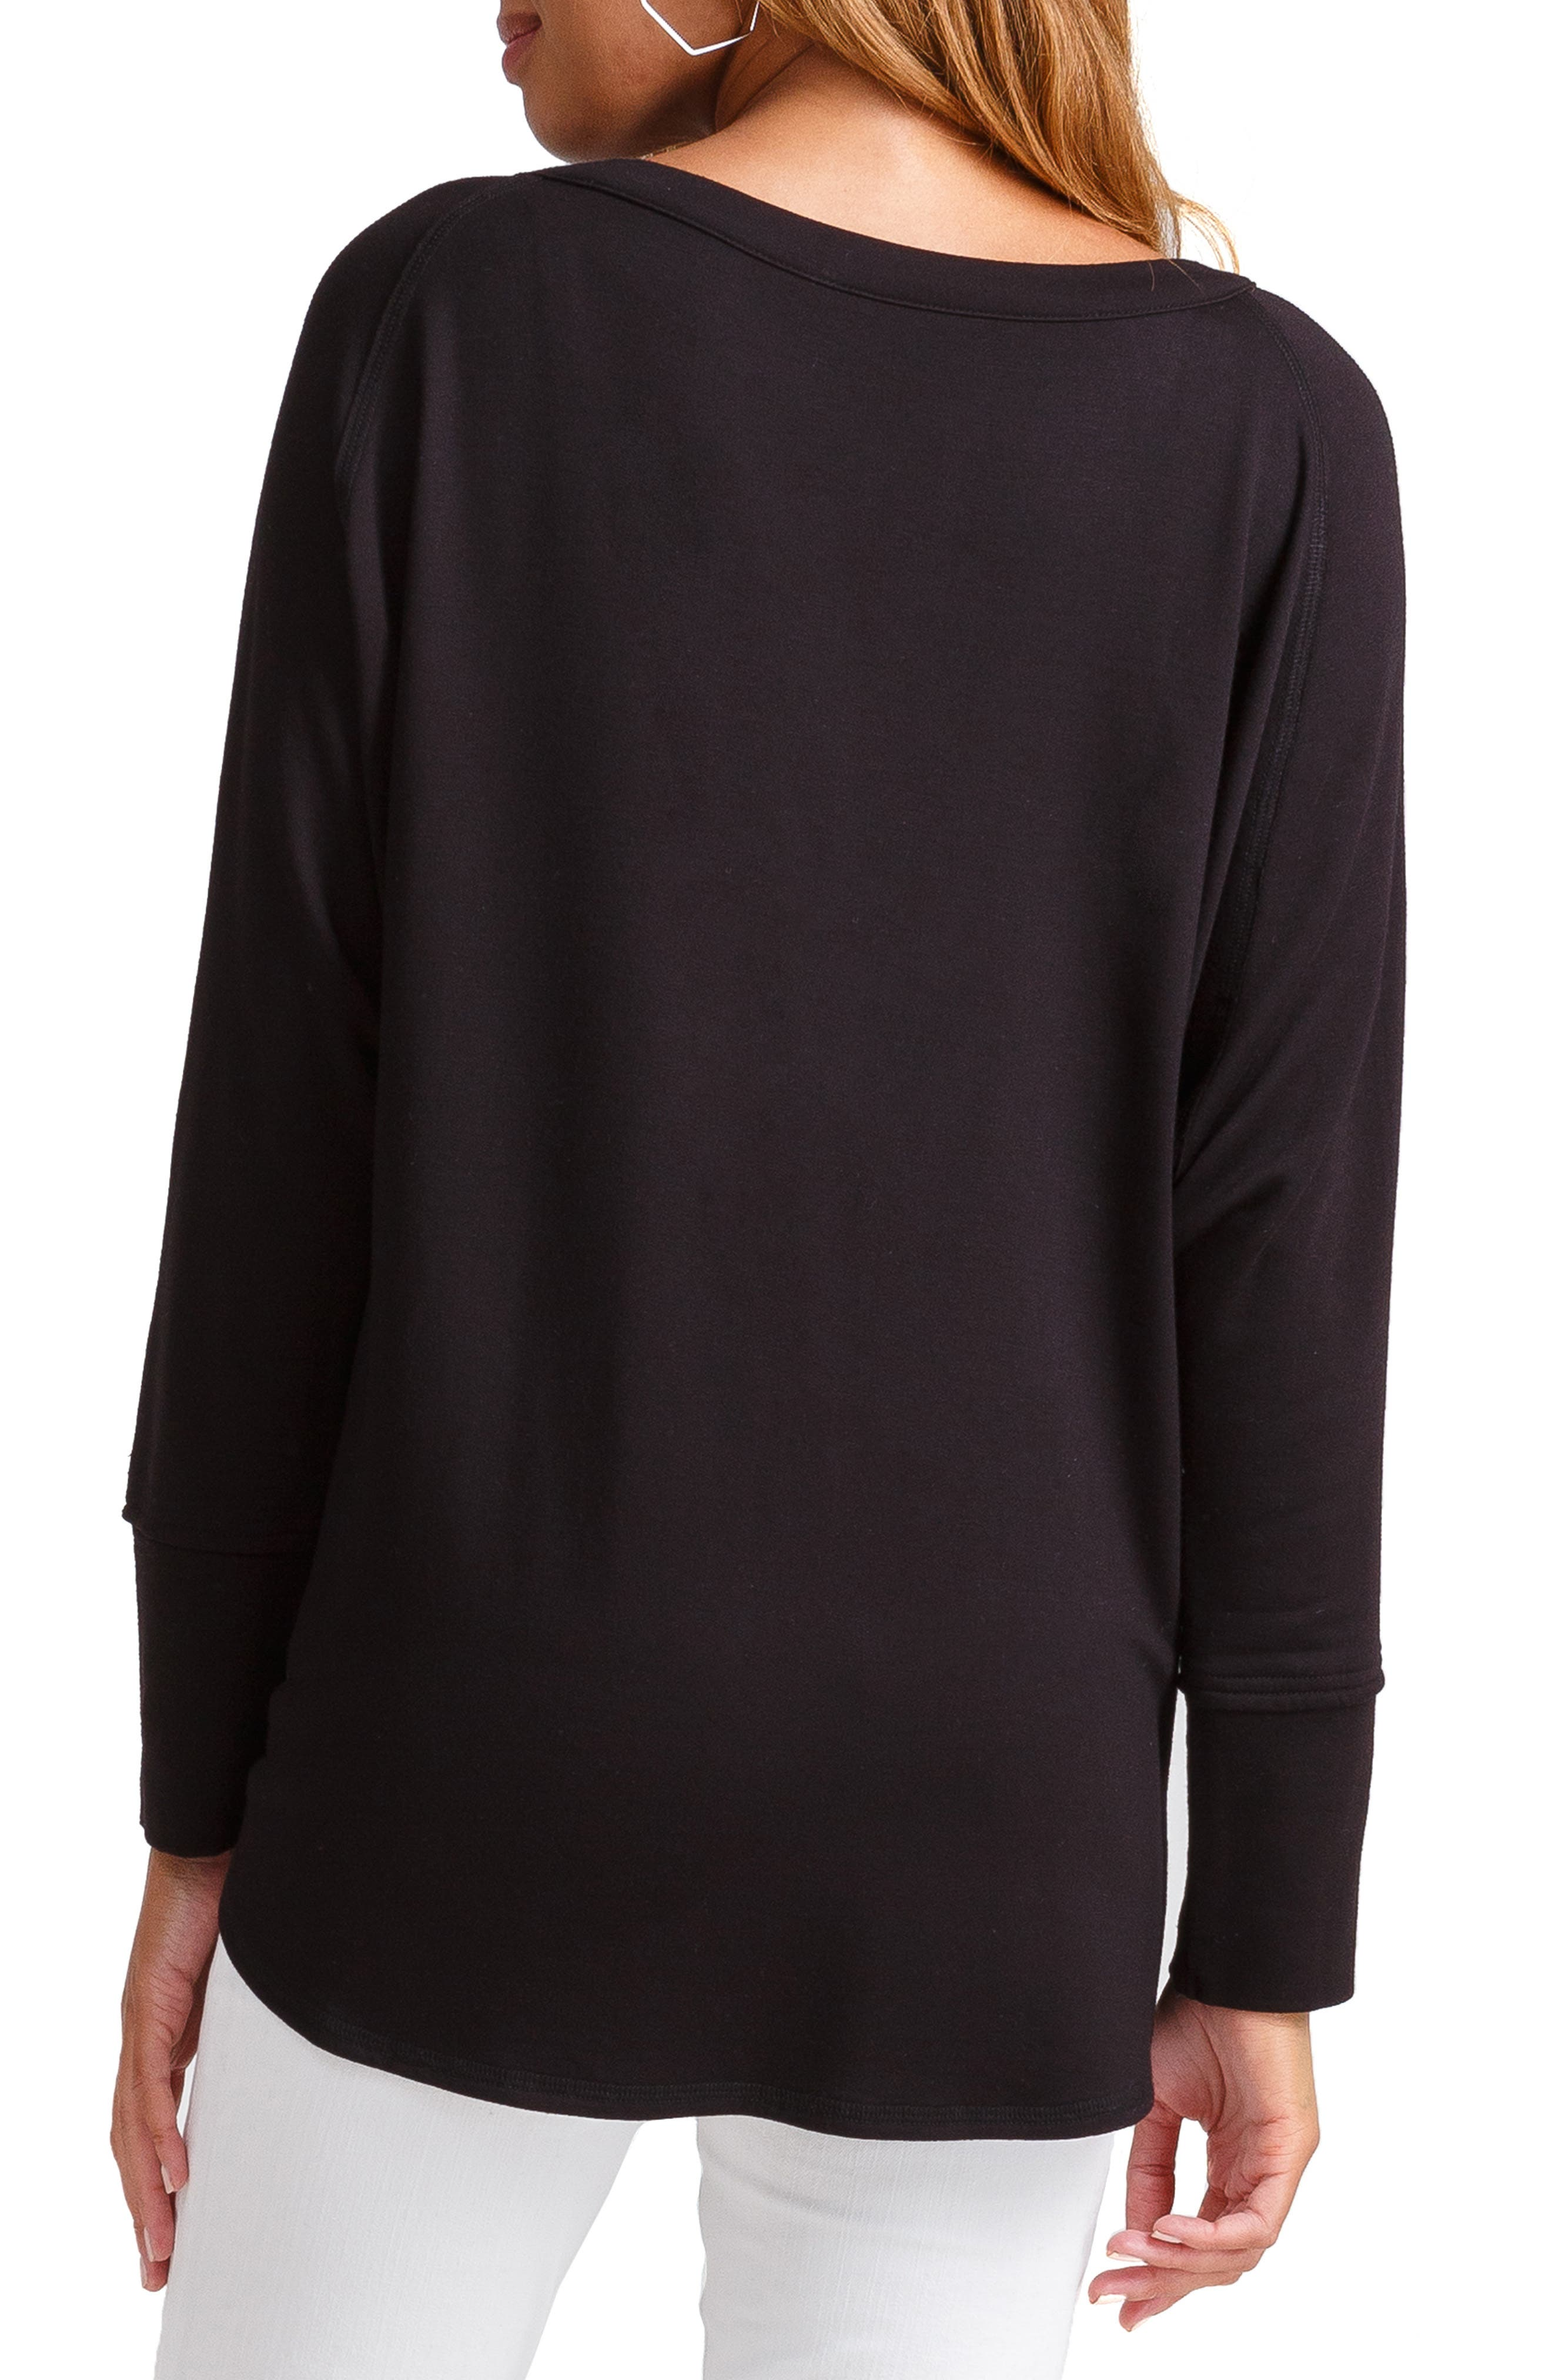 INGRID & ISABEL<SUP>®</SUP>, Lace-Up Cocoon Maternity Top, Alternate thumbnail 2, color, JET BLACK